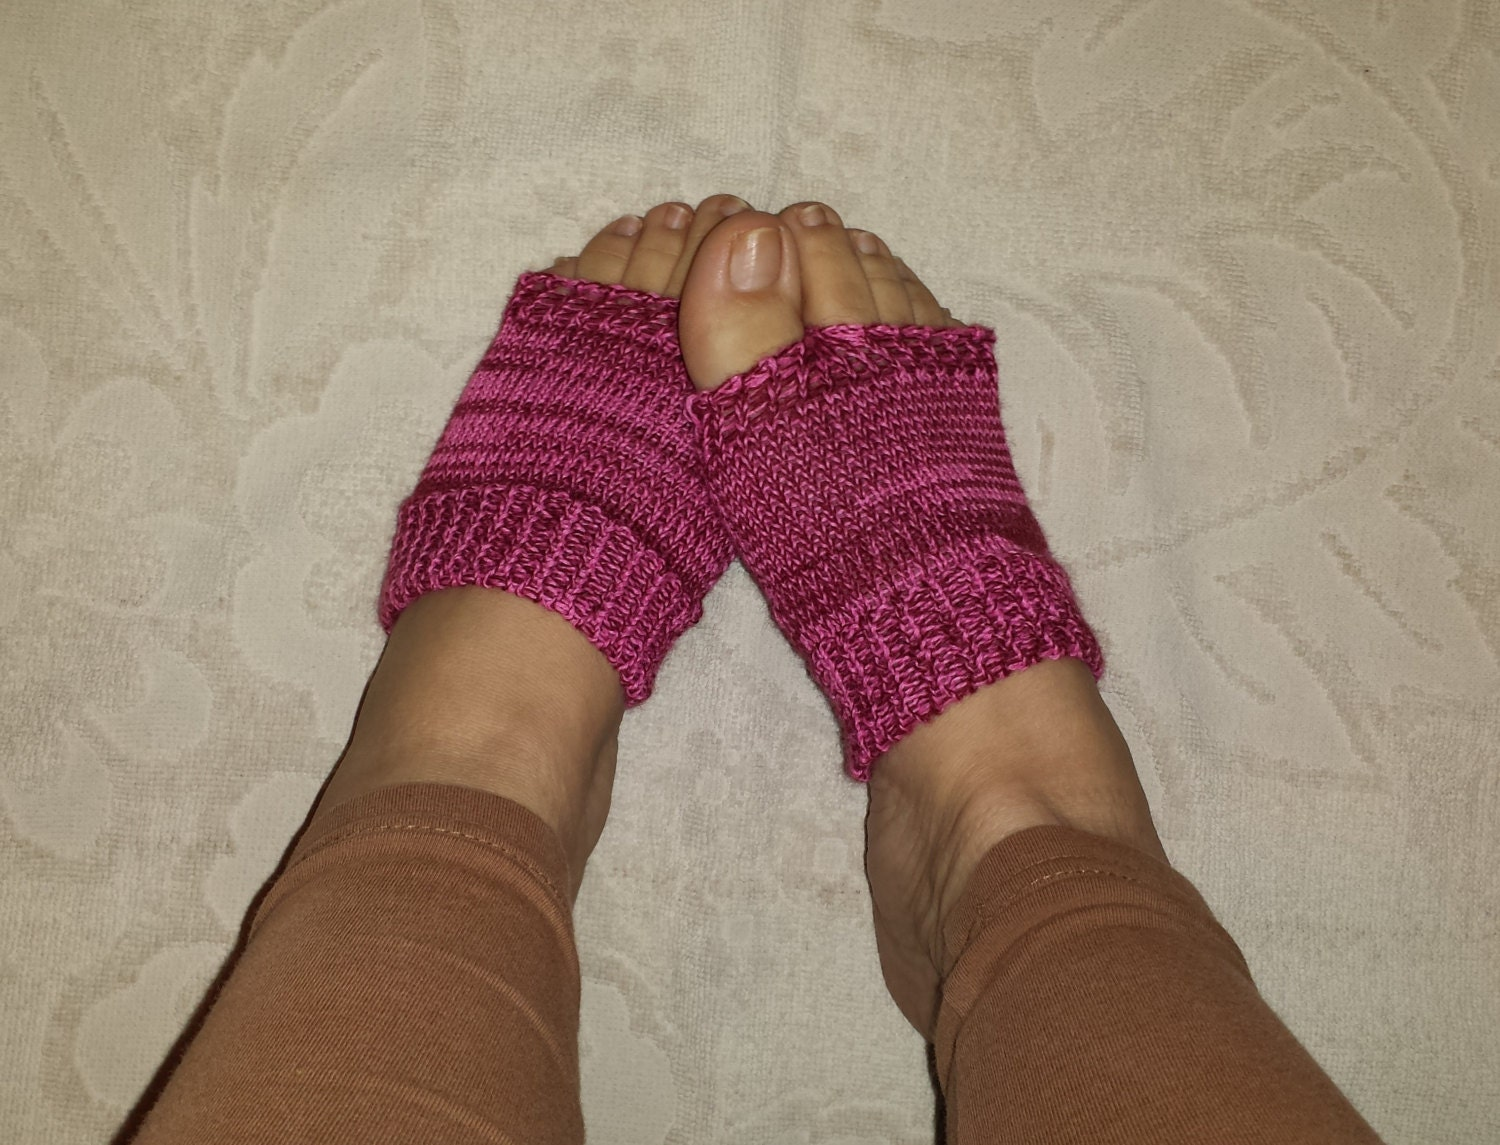 MACHINE KNIT PATTERN, Flip Flop Socks Pattern, Feet Savers Pattern ...